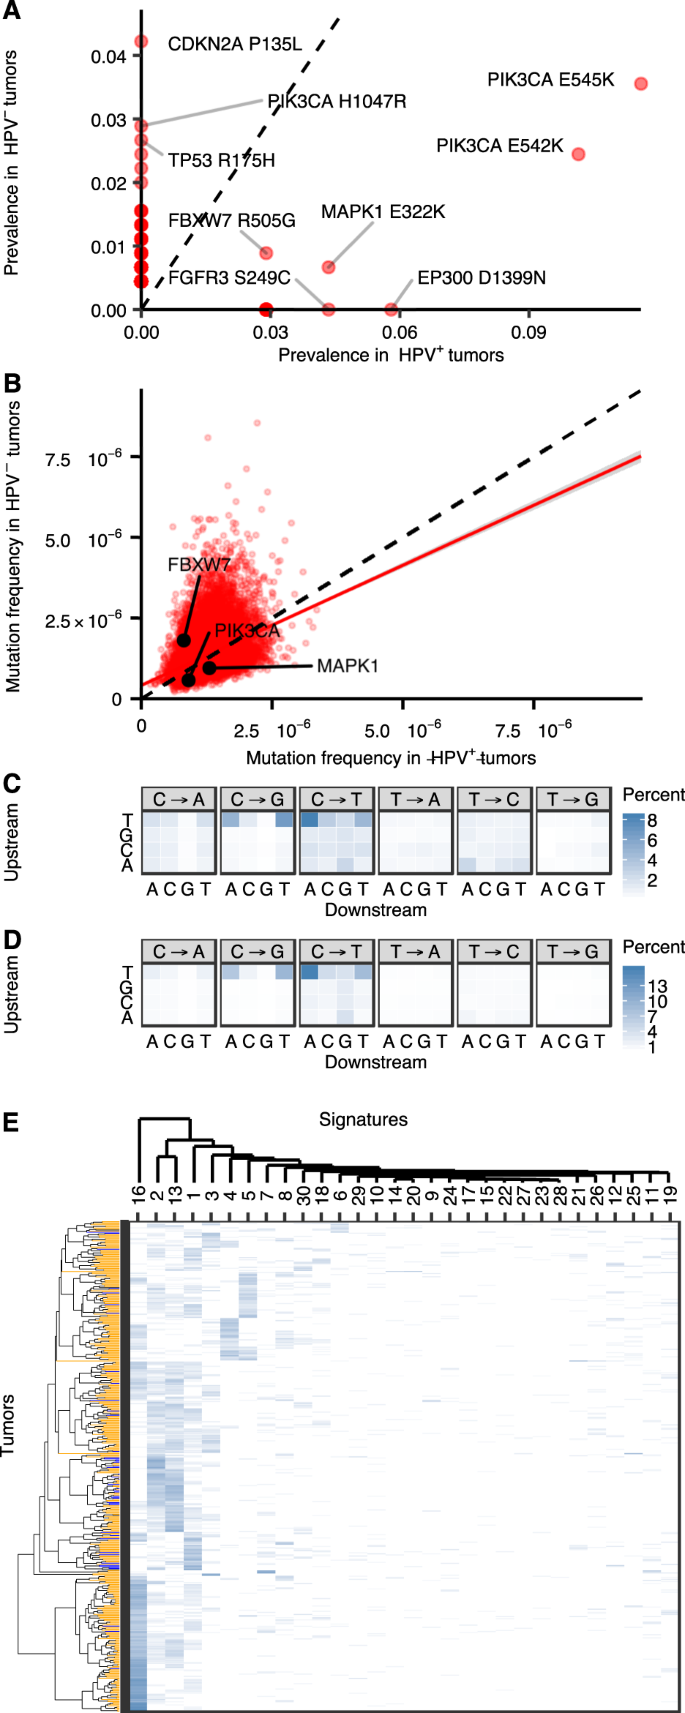 Apobec Induced Mutations And Their Cancer Effect Size In Head And Neck Squamous Cell Carcinoma Oncogene 25,036 likes · 47 talking about this. apobec induced mutations and their